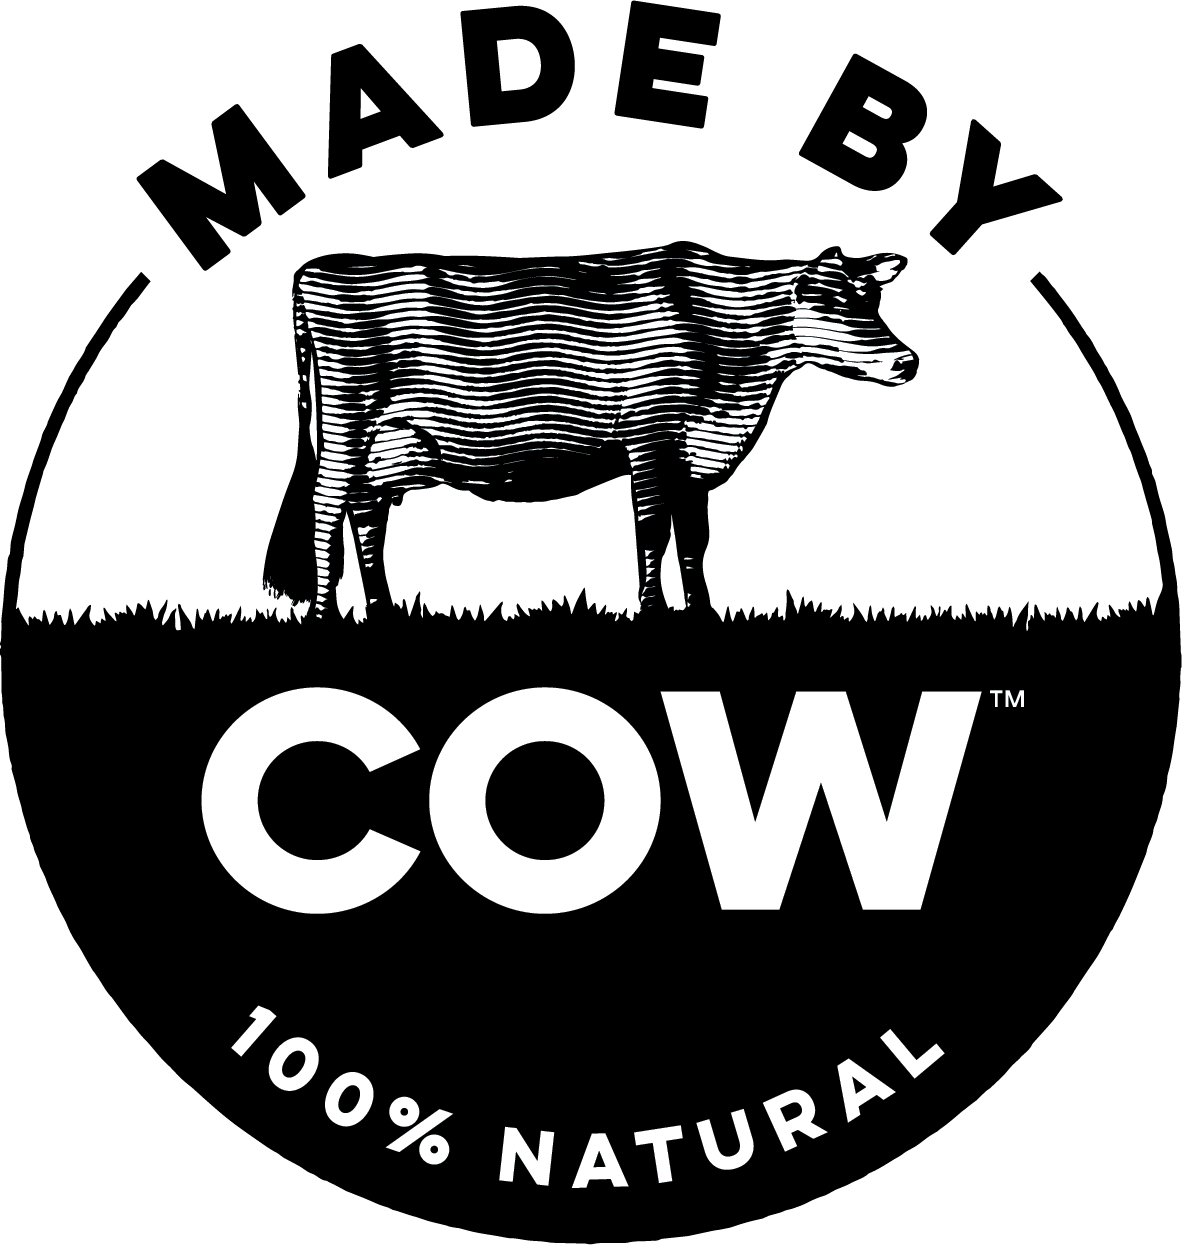 Made By Cow